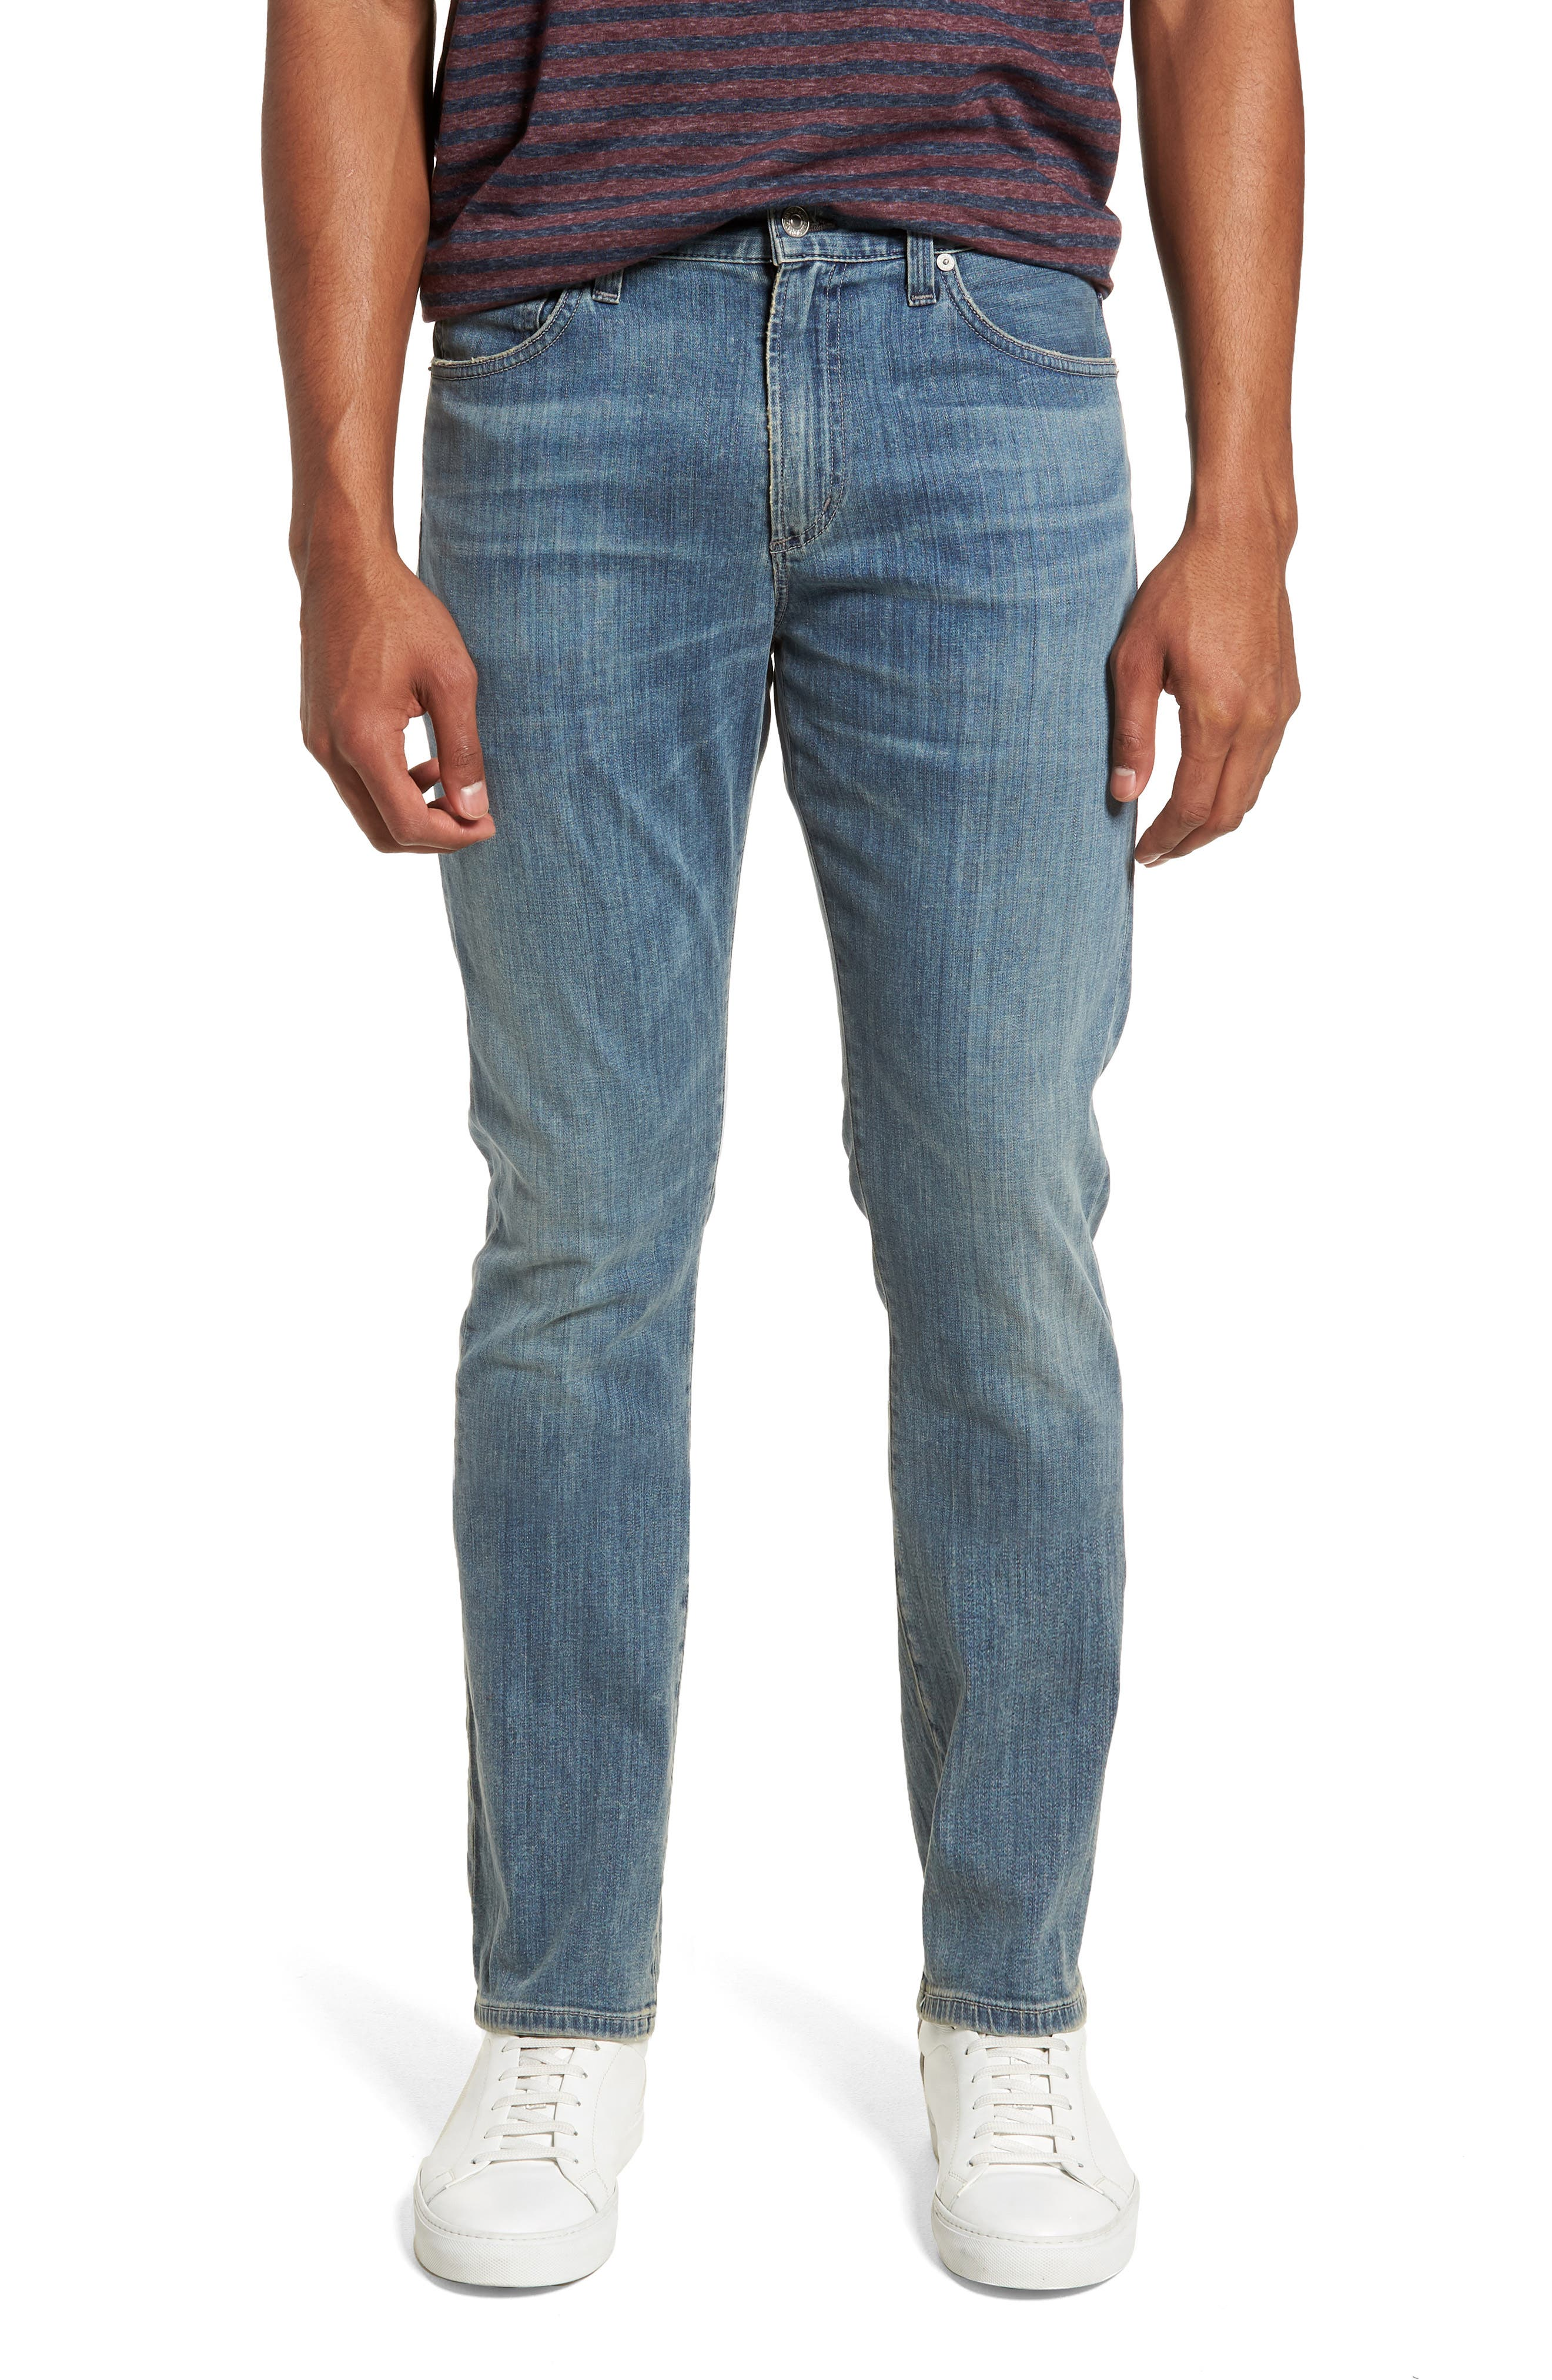 Gage Slim Straight Leg Jeans,                             Main thumbnail 1, color,                             COSTA